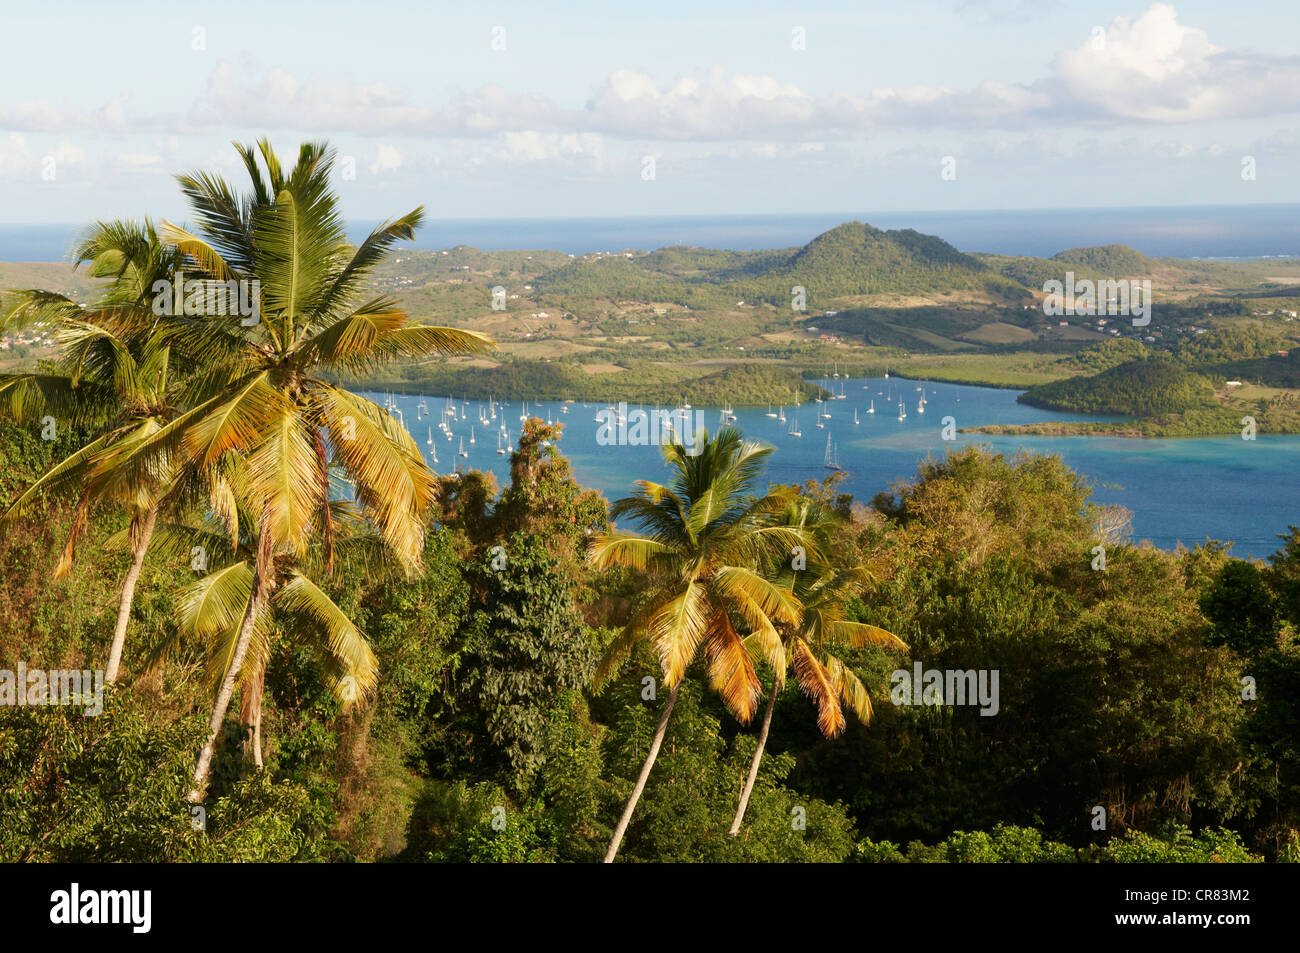 France, Martinique (French West Indies), Cul de Sac du Marin, palm trees - Stock Image